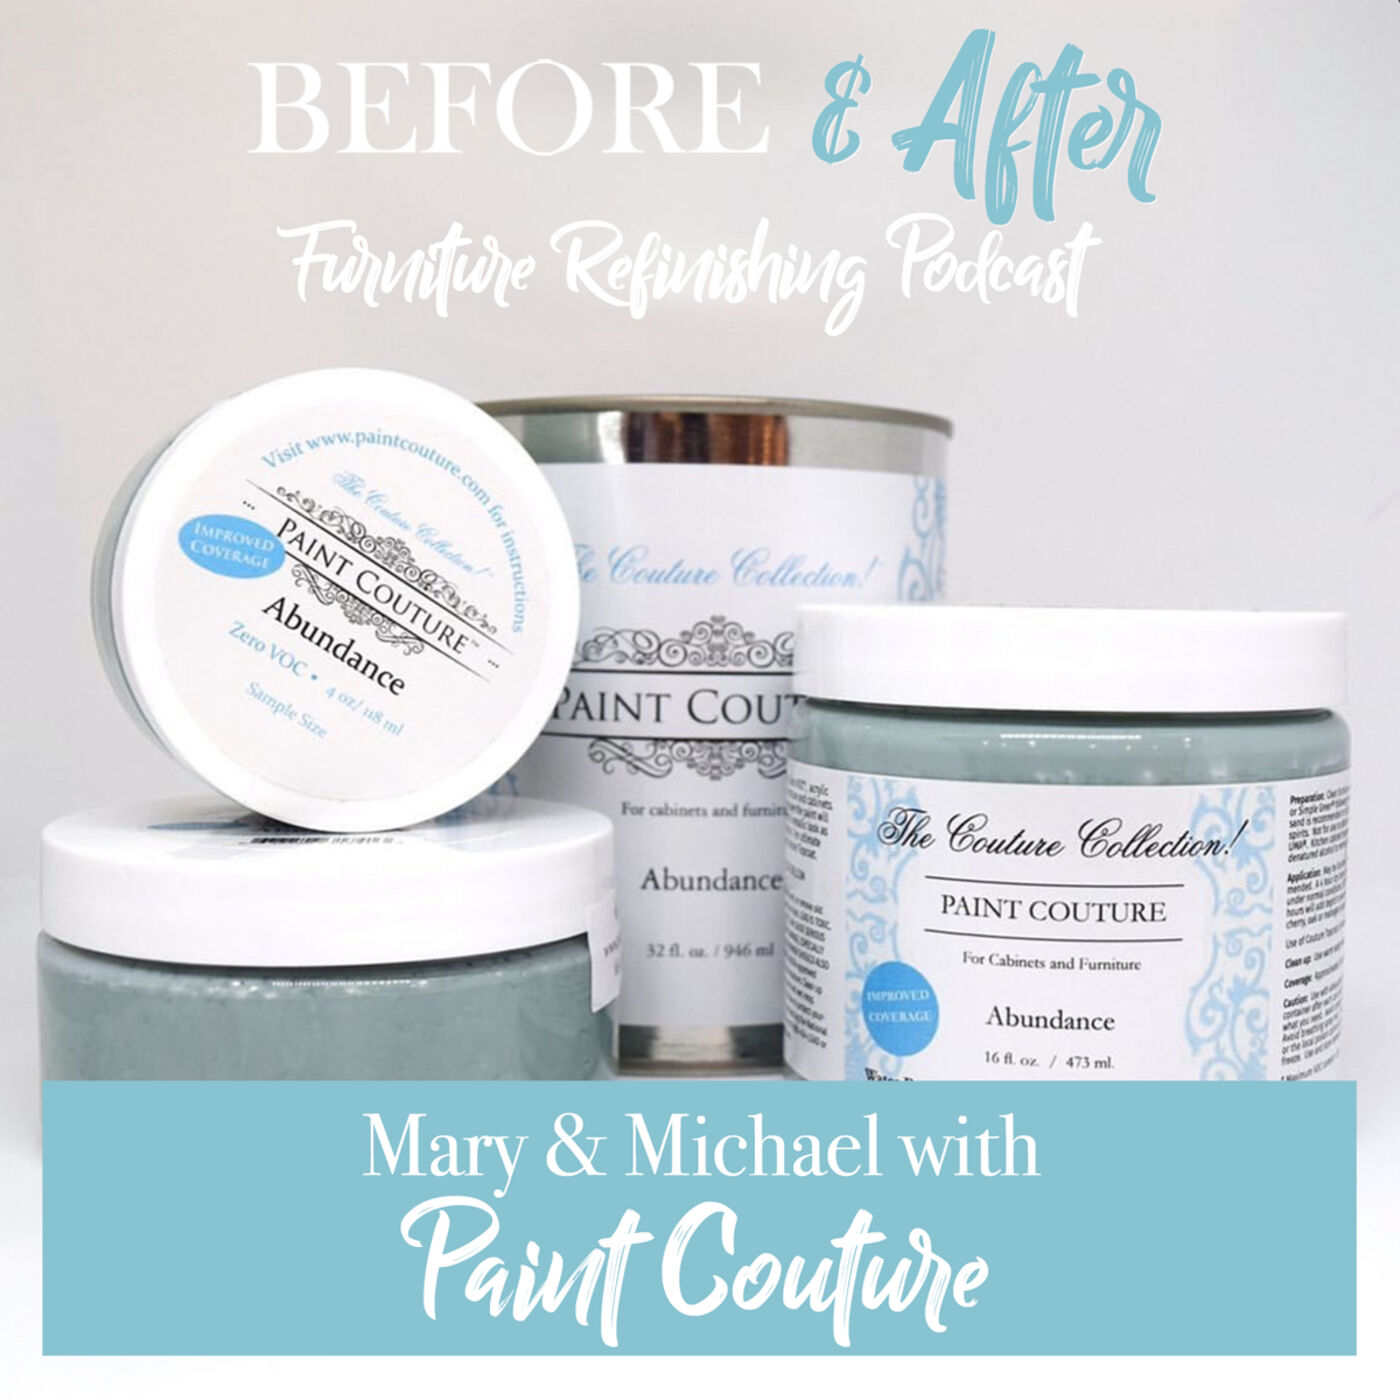 Discover the benefits of using Paint Couture!